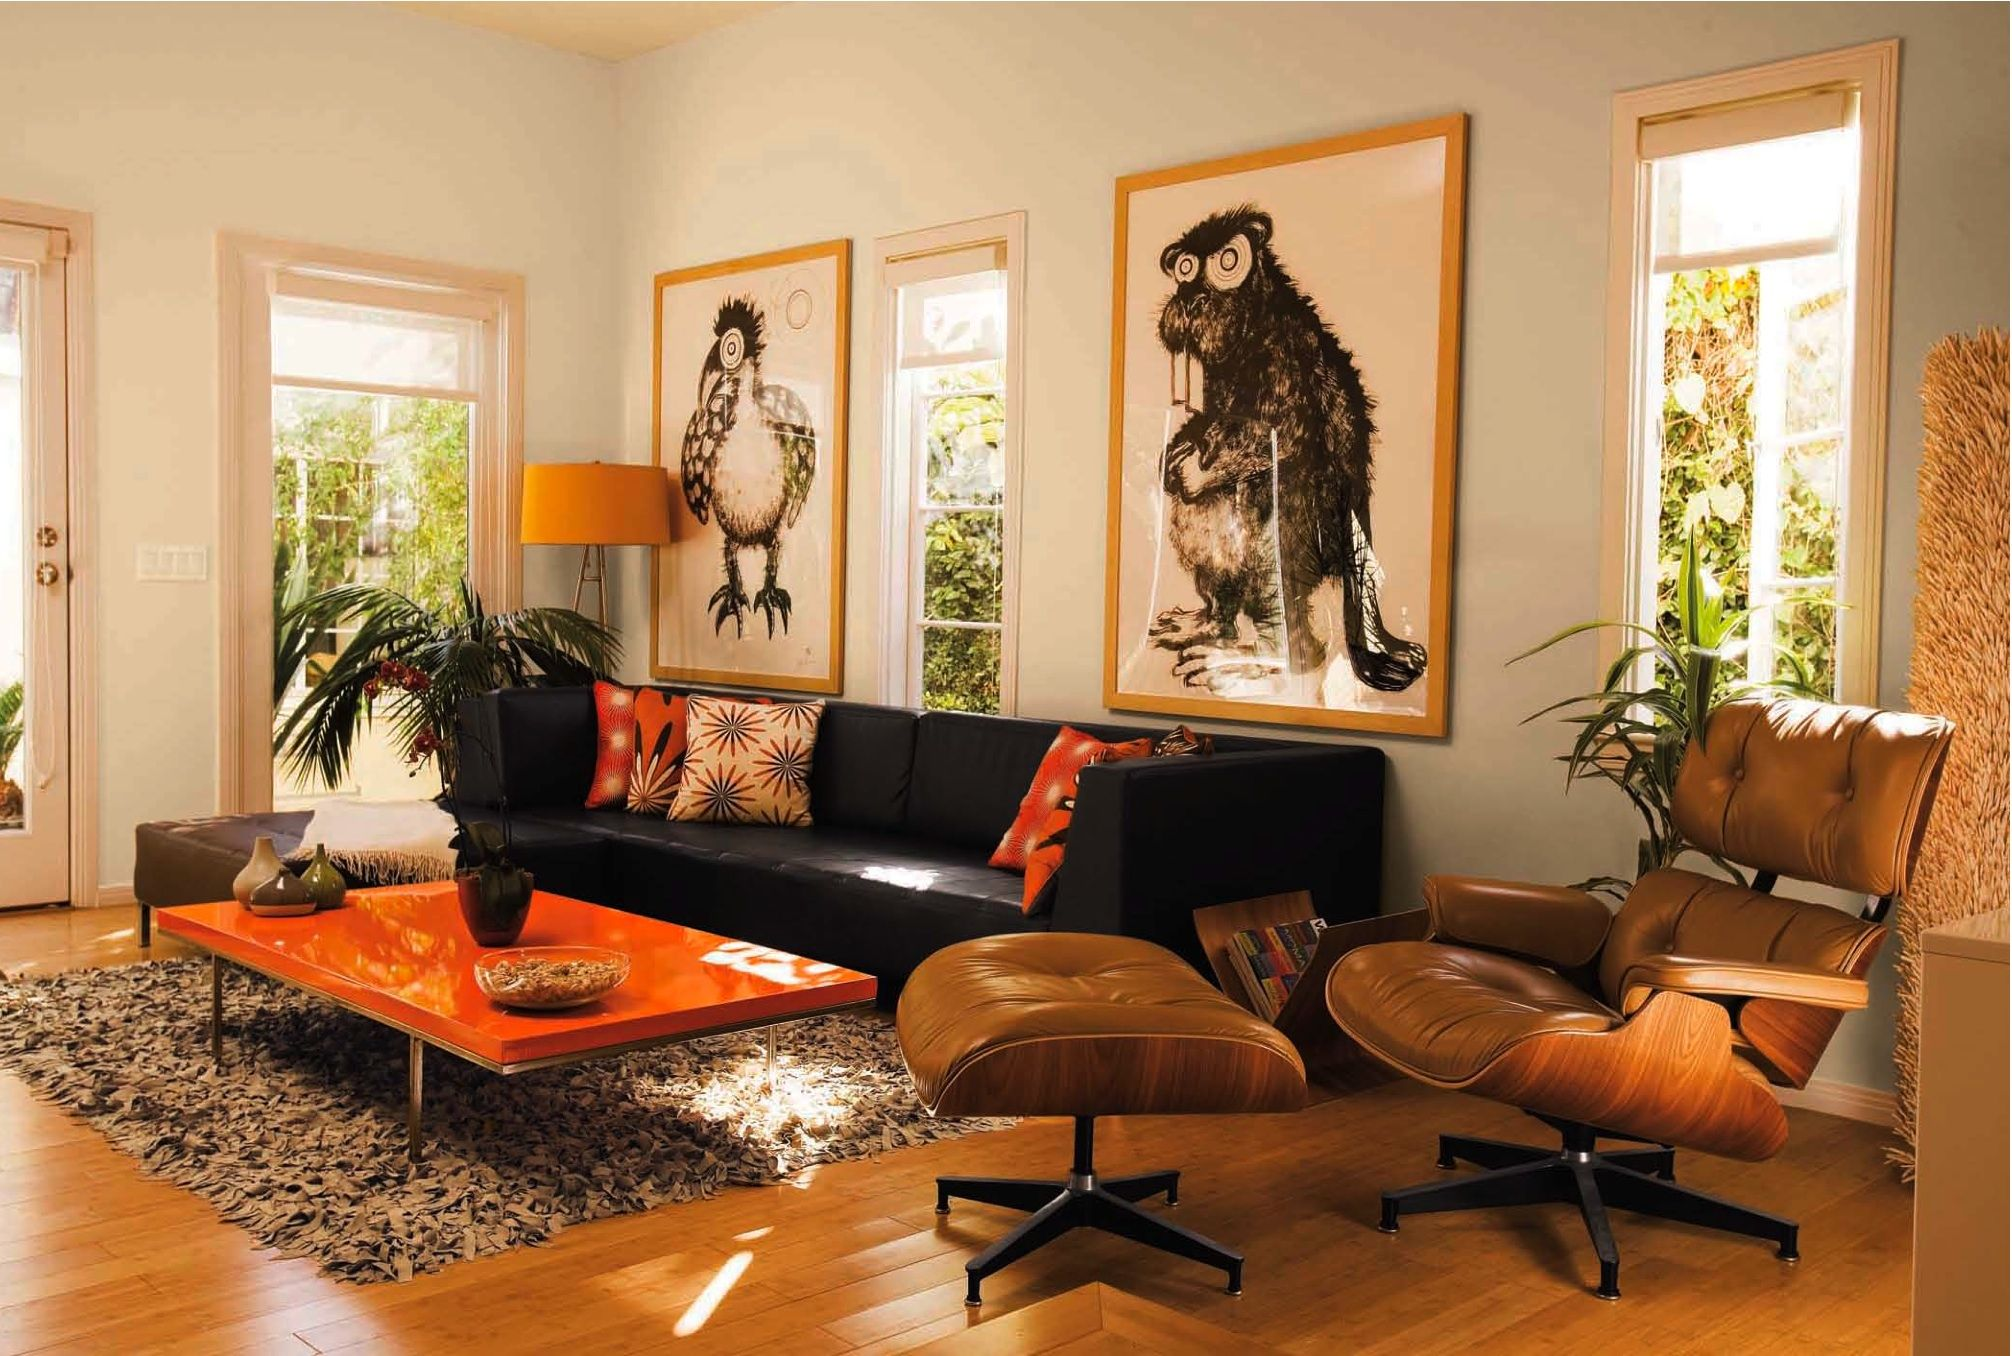 Living room decor with orange and brown room decorating ideas amp home de